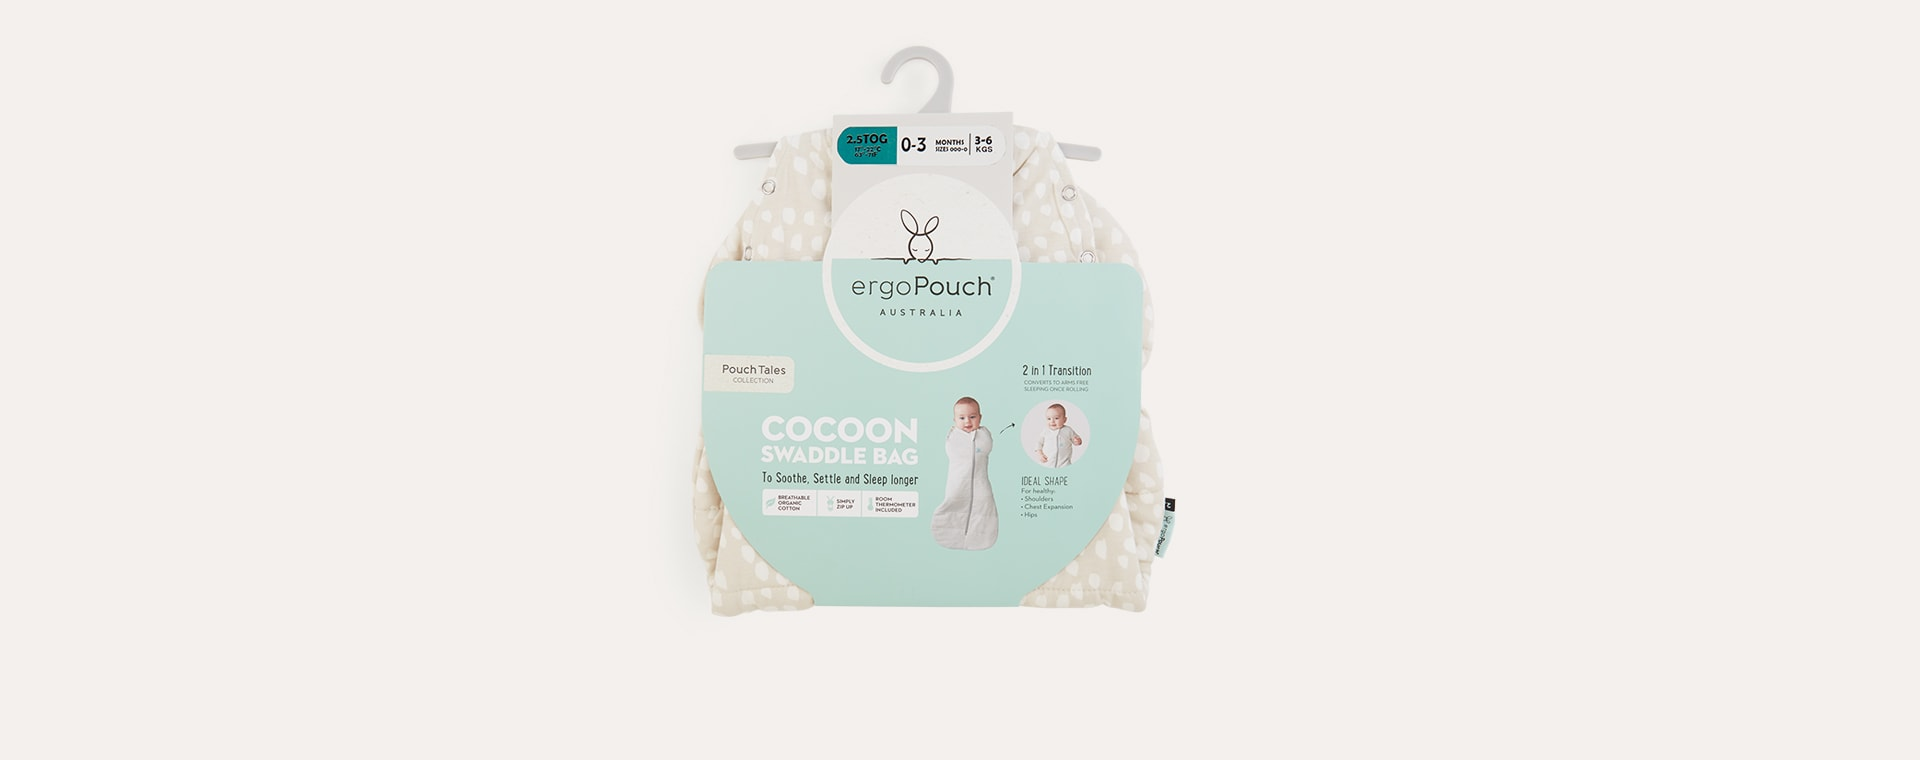 Fawn Ergopouch ergoCocoon Swaddle Bag 2.5 TOG